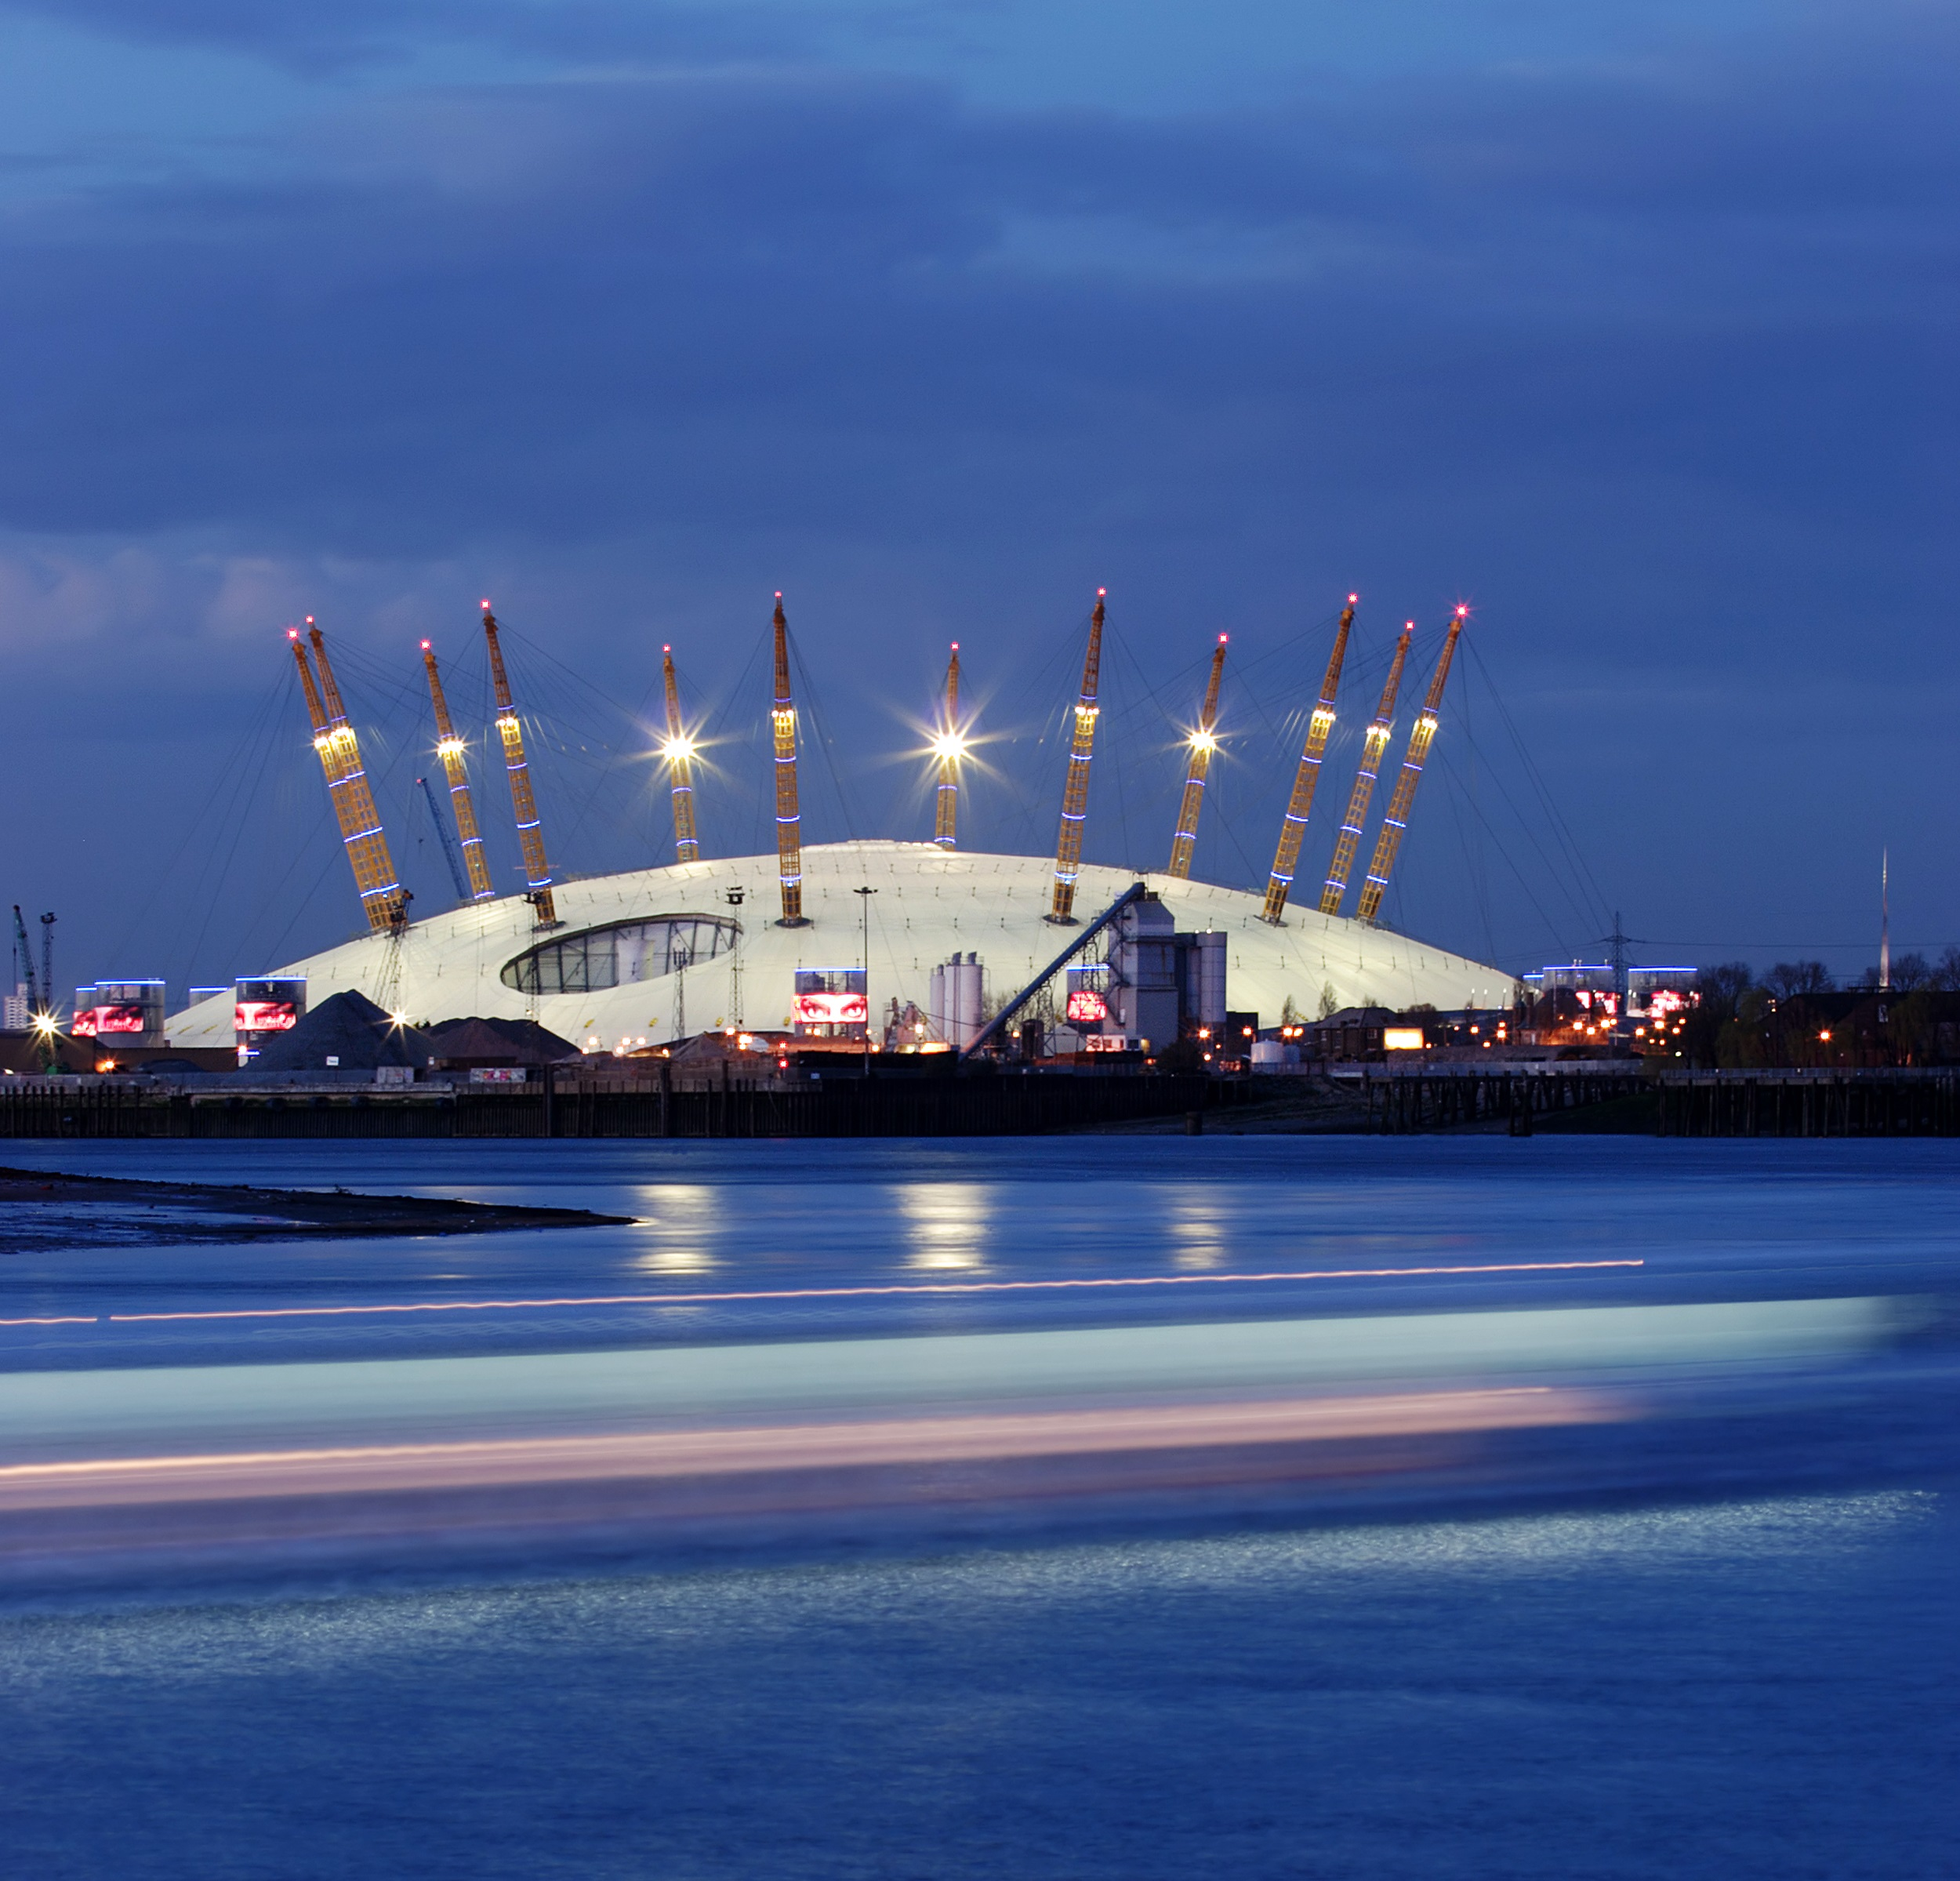 Abloy UK secures the O2 Arena with ballistic doors